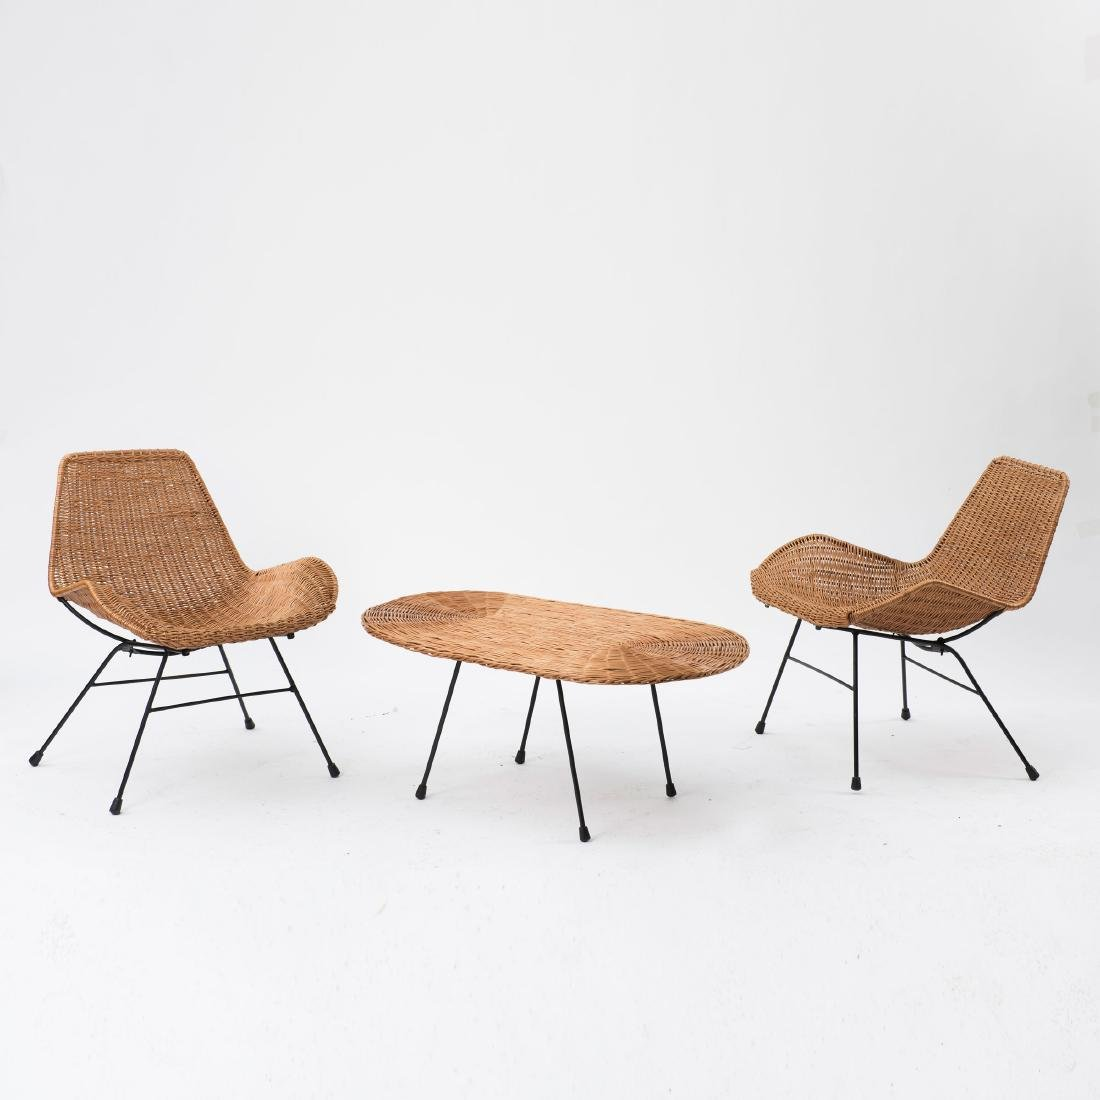 Two easy chairs and a coffee table from the 'Triva' - 2